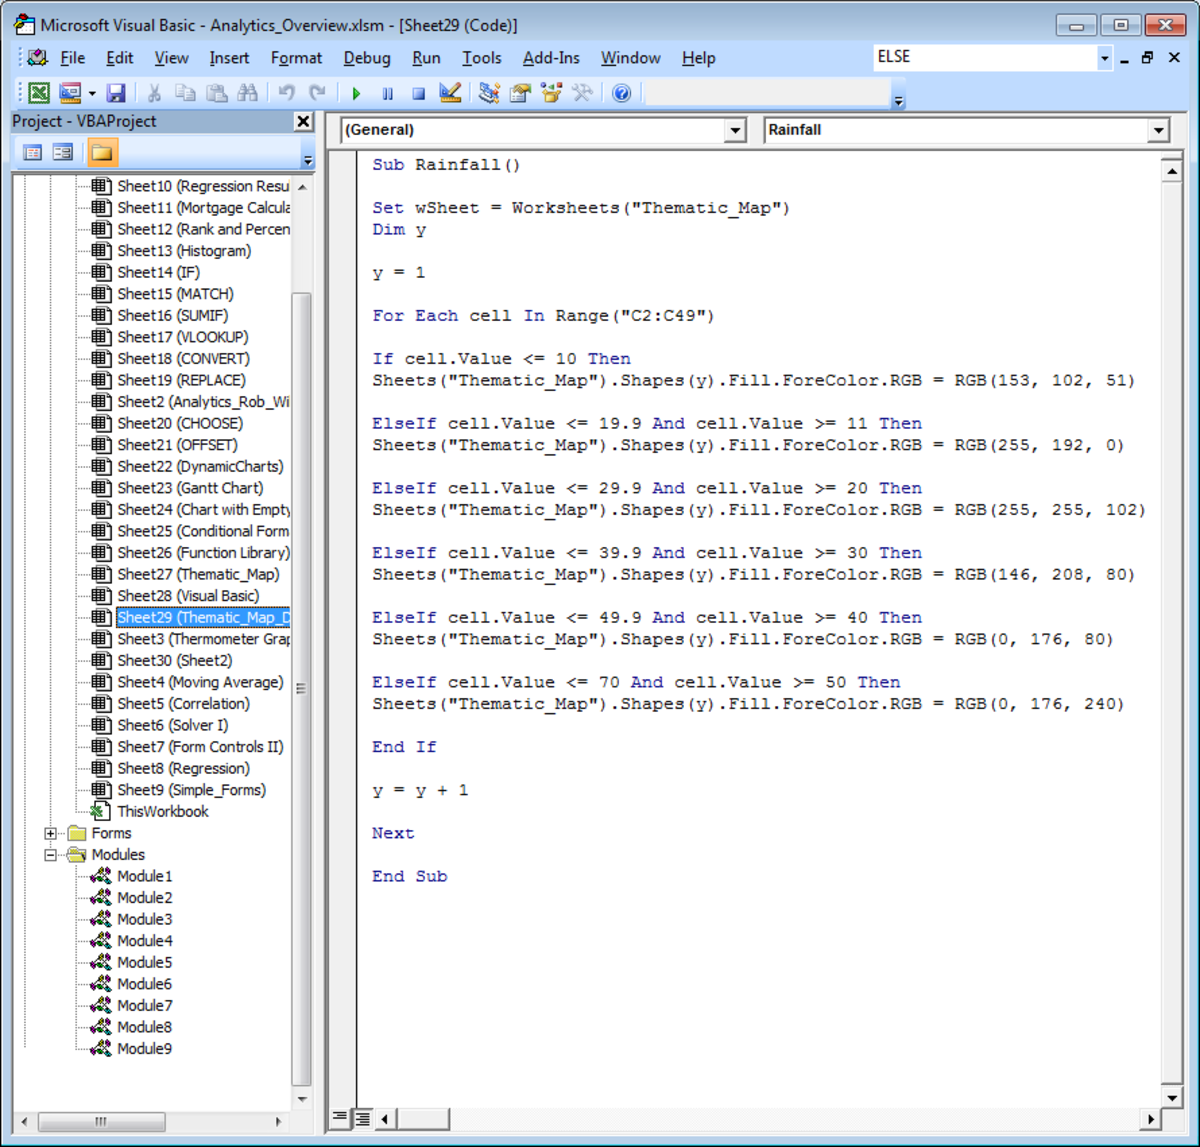 Example of using the ELSEIF Visual Basic command in Excel 2007 and Excel 2010.